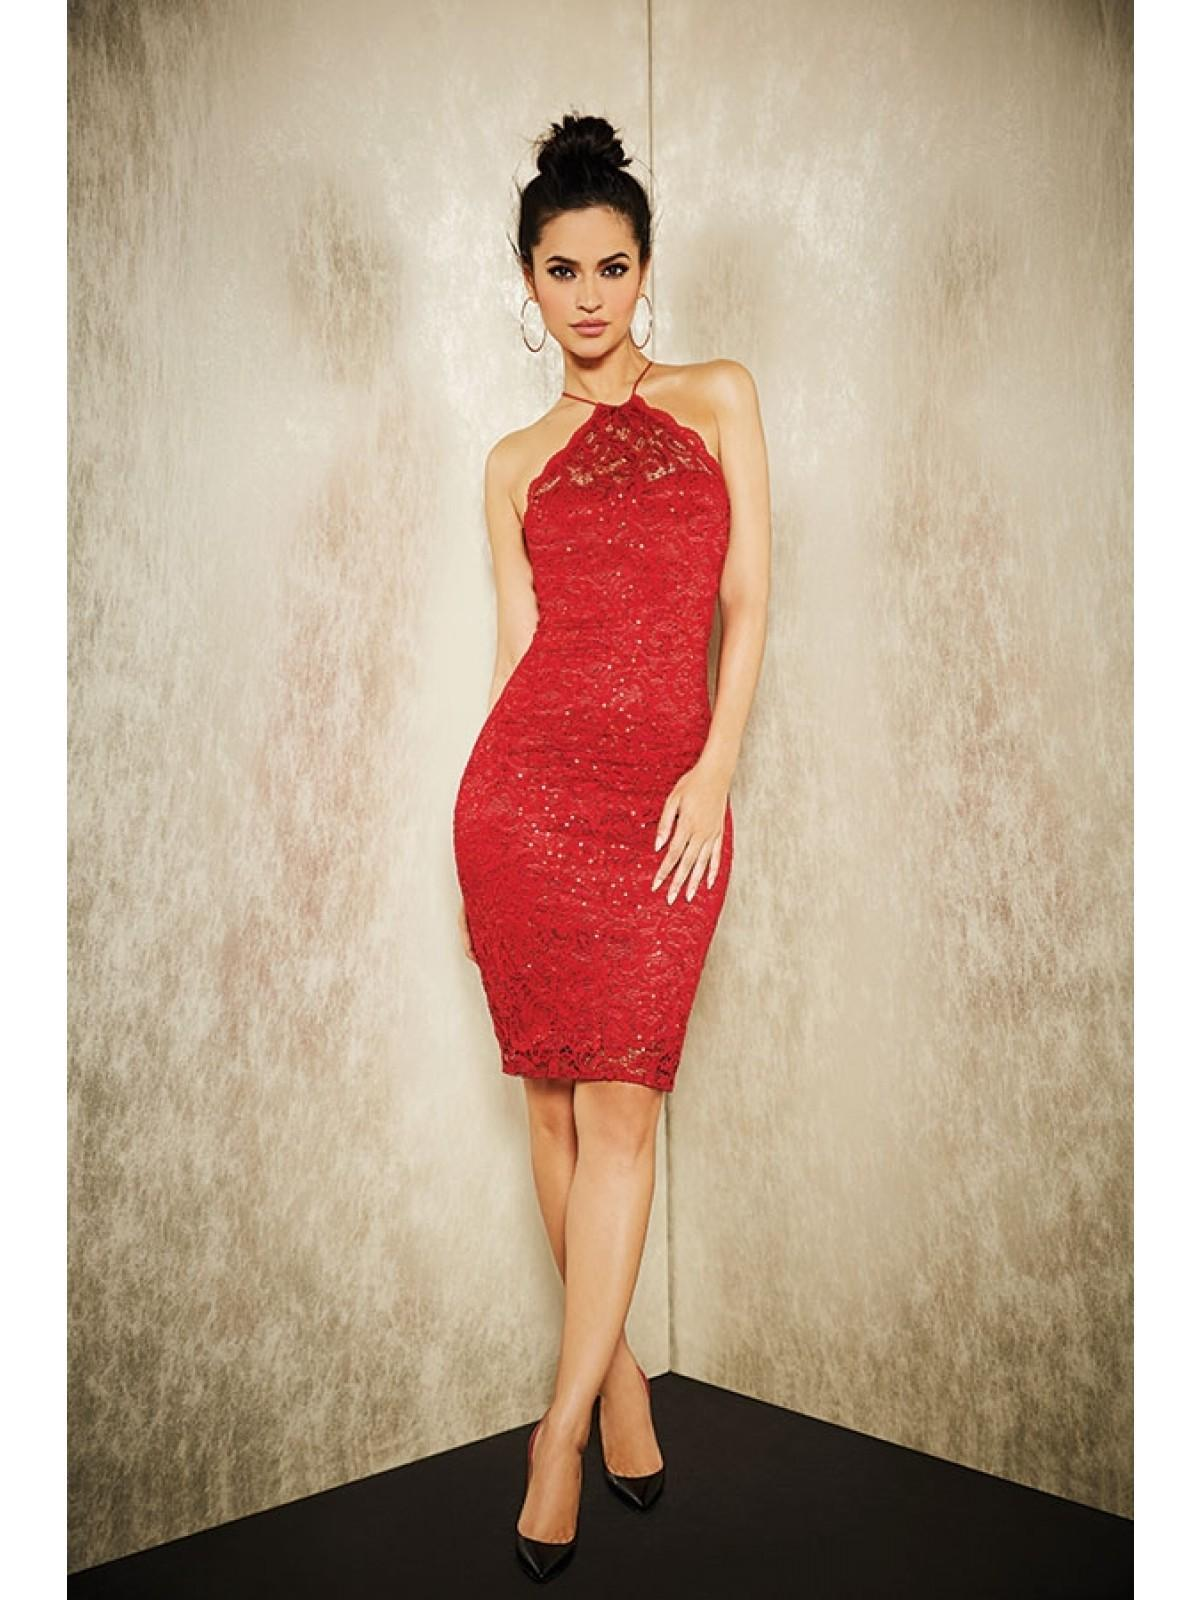 A red party dress will make you stand out on the dancefloor for all the right reasons!